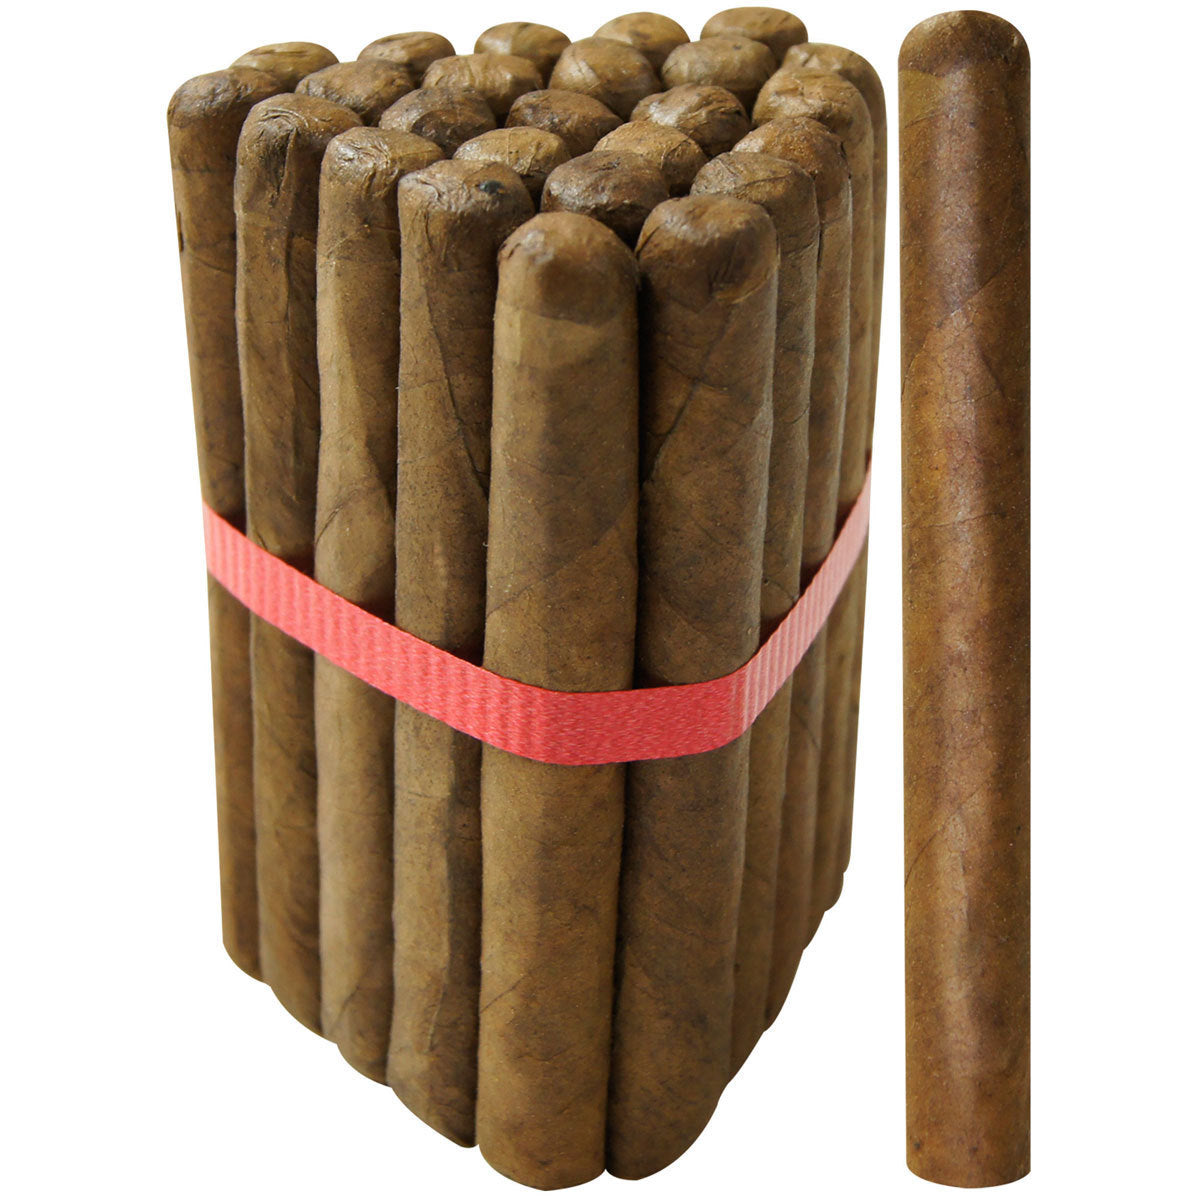 Flavored Cherry cigars - Cigar boulevard